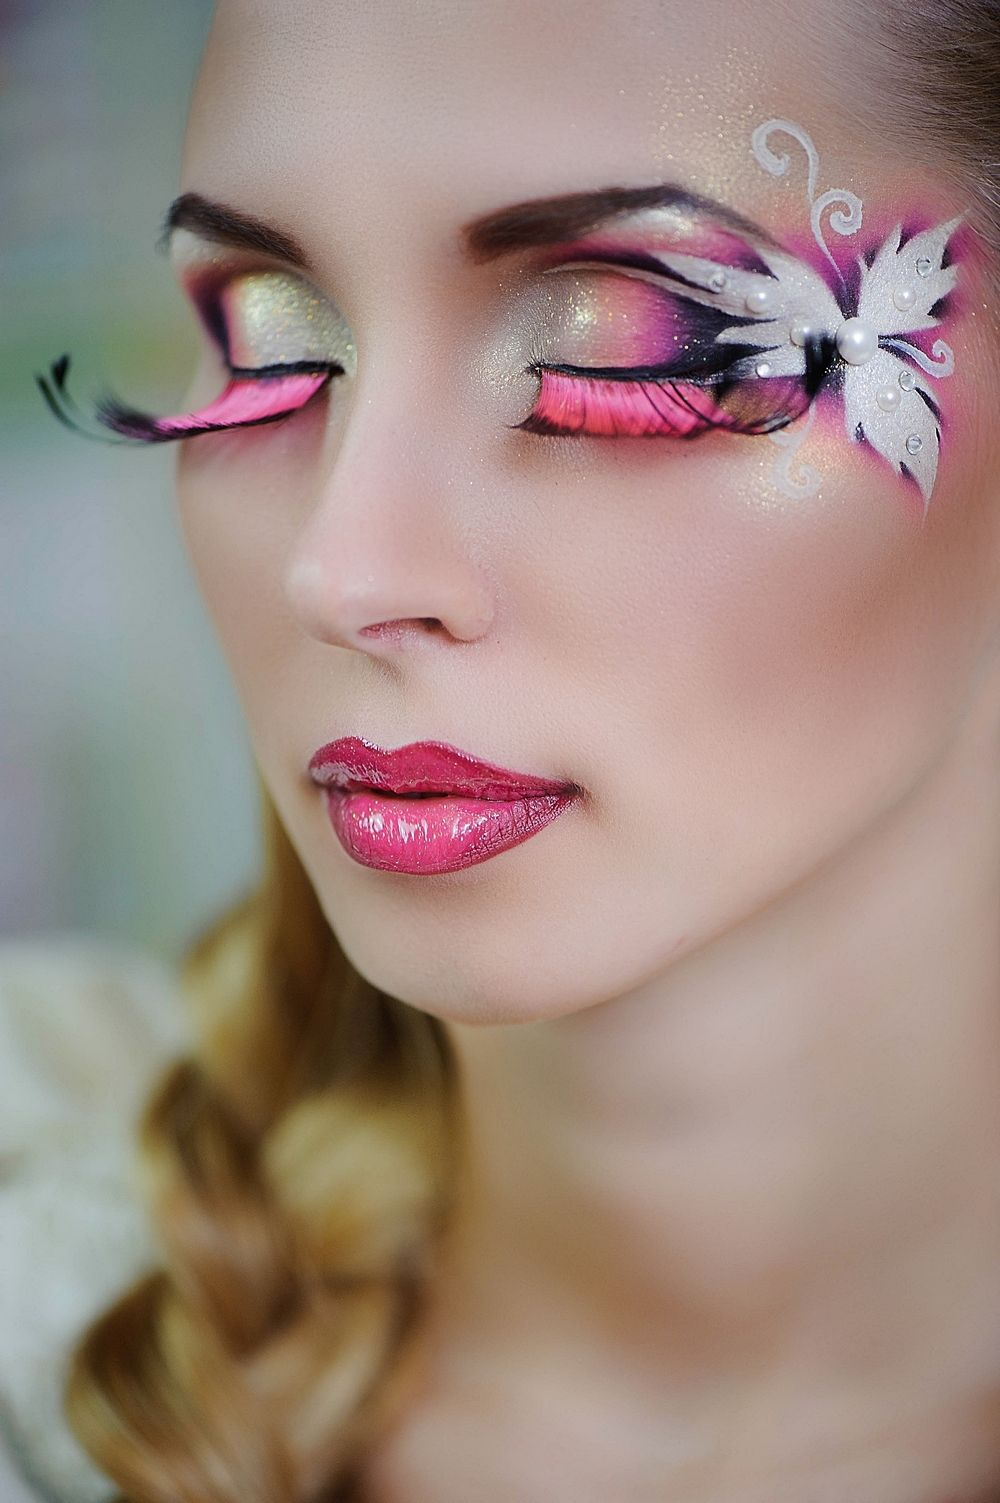 Artistic yellow, pink and white fantasy makeup with pink